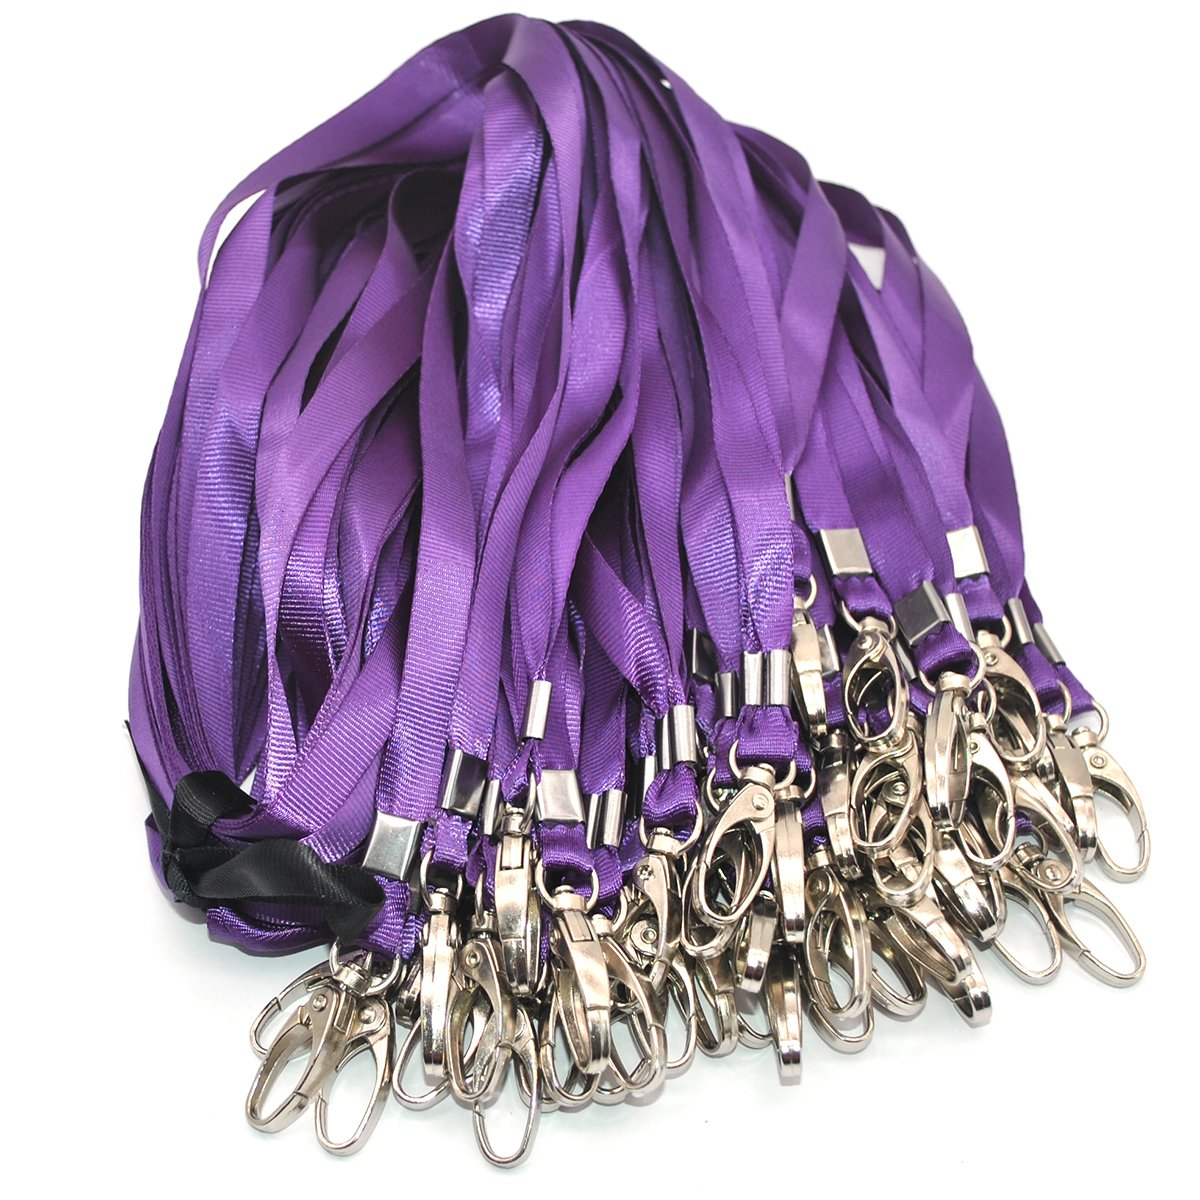 Warmter 50 Pack Lanyard Badge Lanyards For ID Name Tags and Badge Holders (Purple)